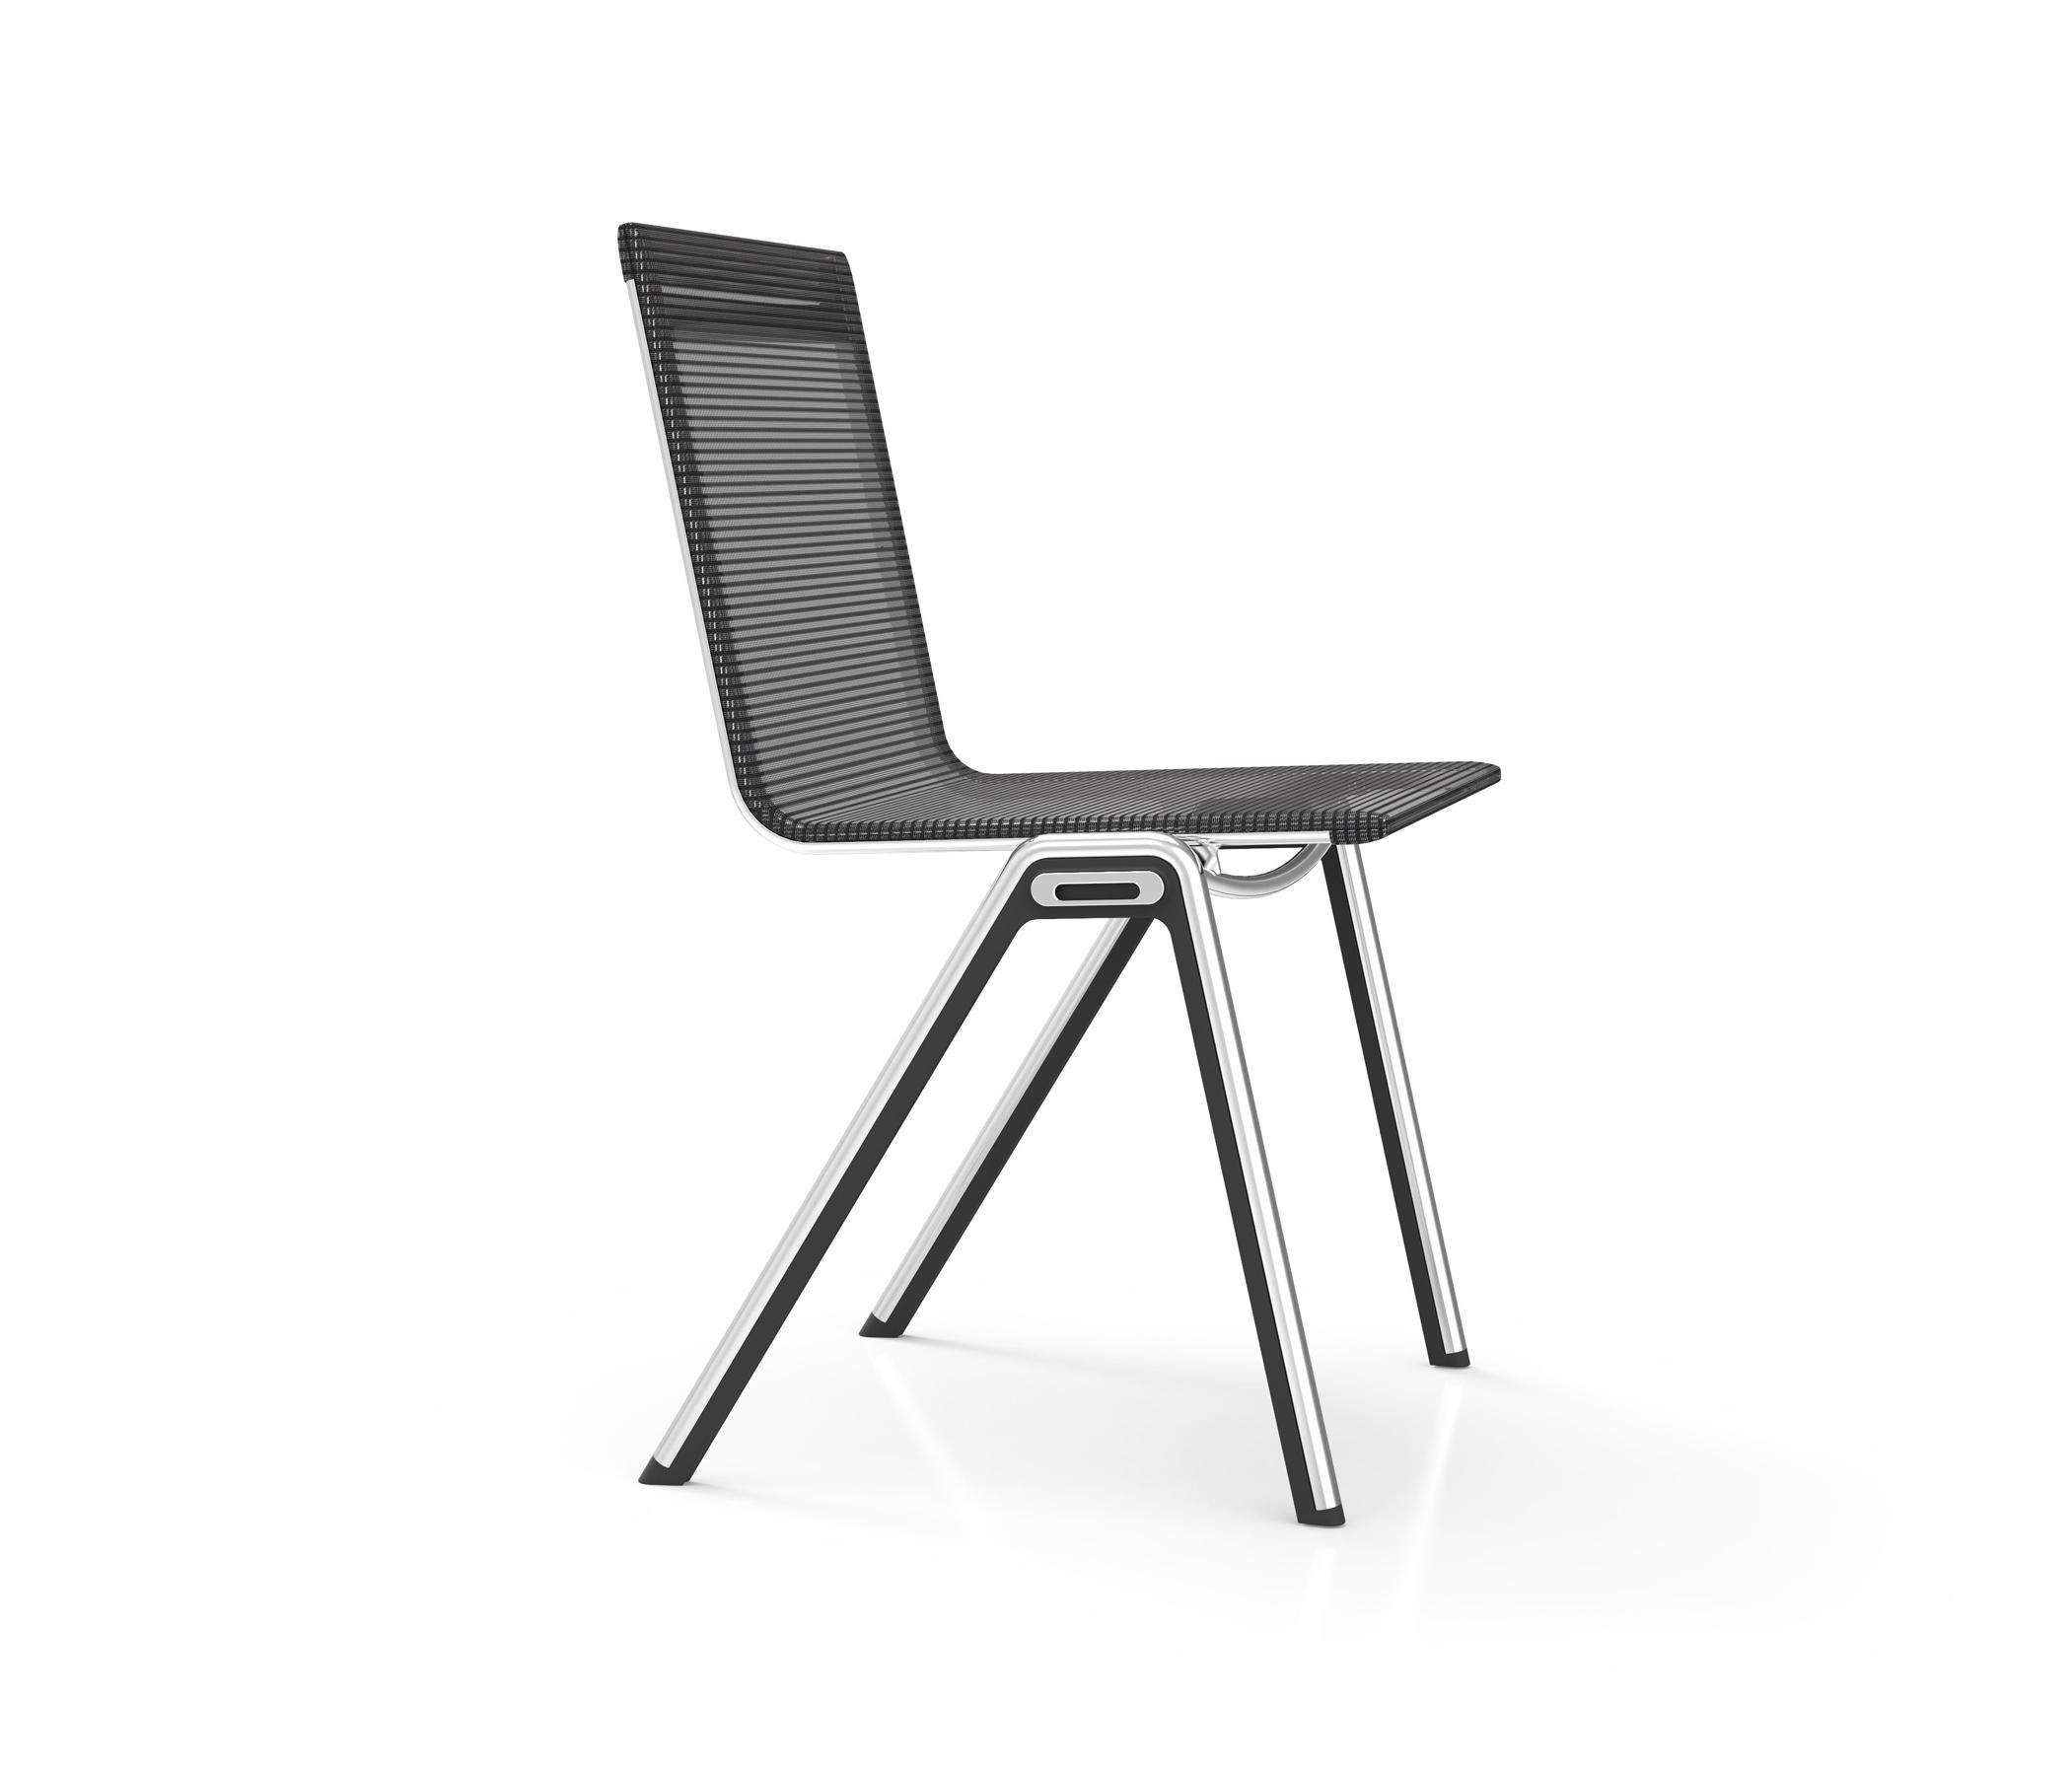 Schneeweiss Ag blaq chair visitors chairs side chairs from rosconi architonic